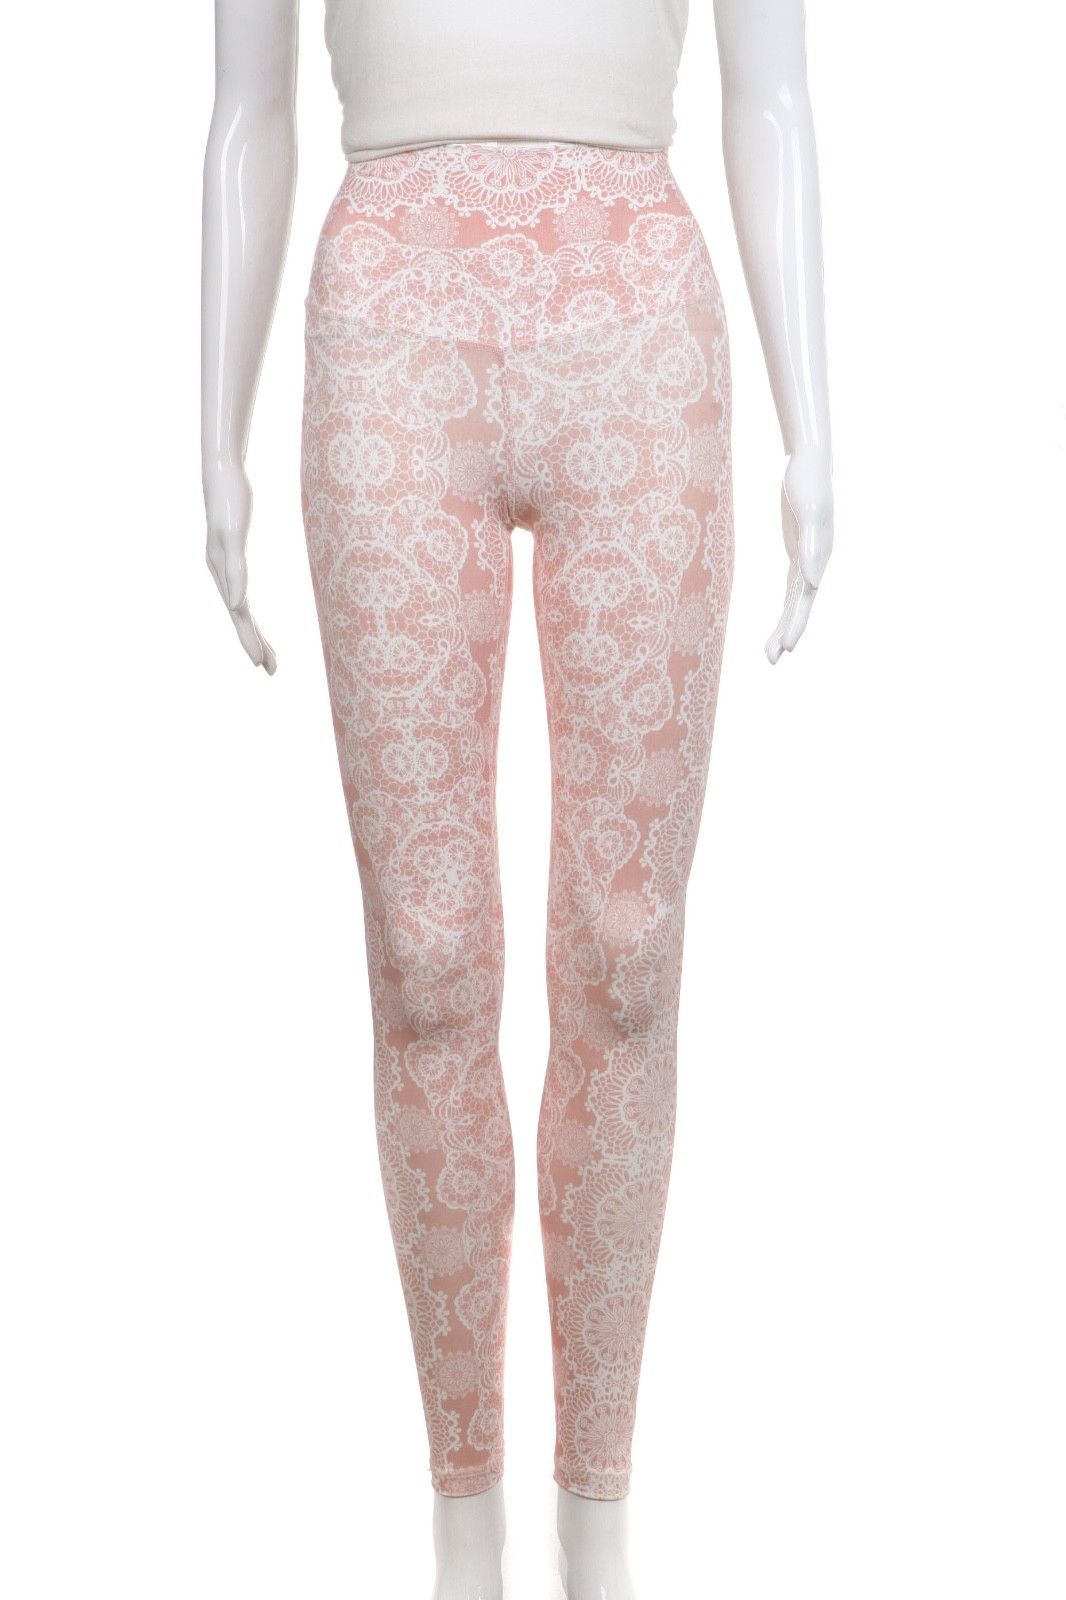 DYI Powder Pink White Lace Printed Full Length Yoga Pants Leggings Size XS